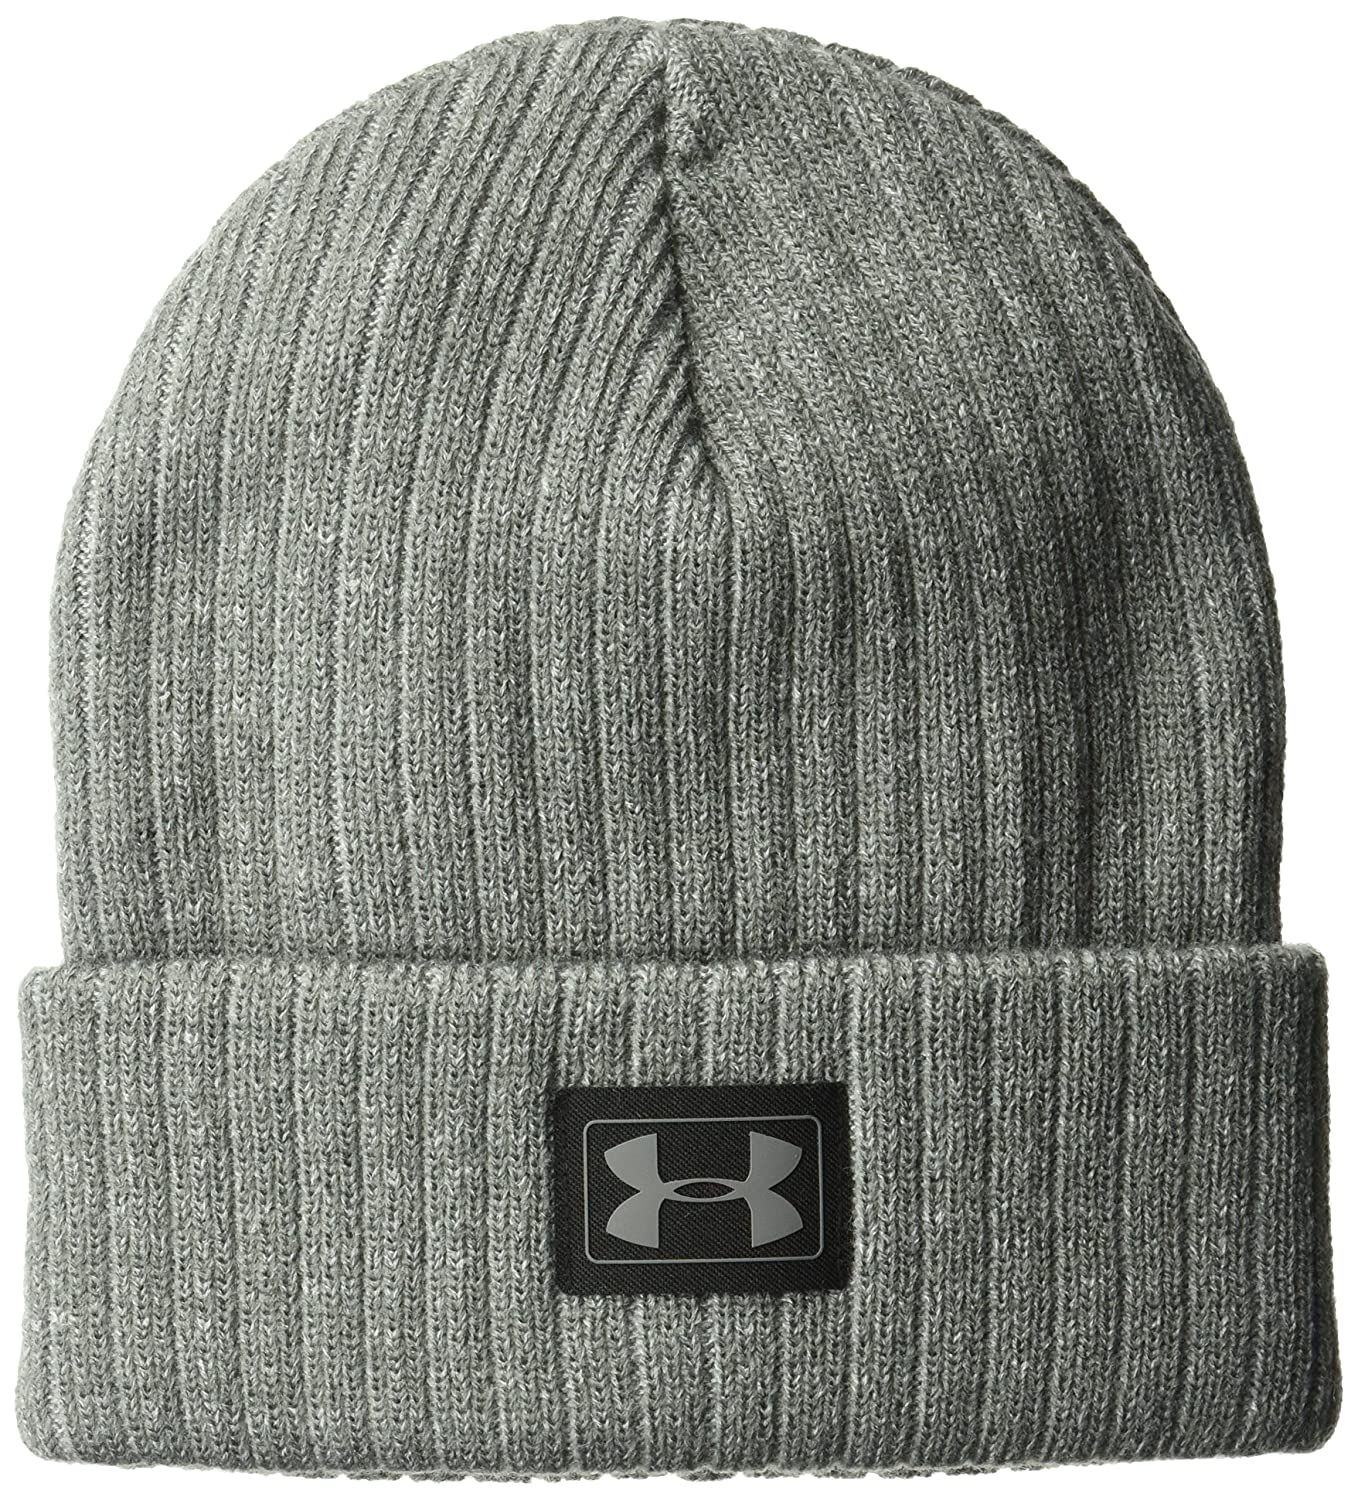 Under Armour Boys' Truck Stop Beanie, Black/Black, One Size Under Armour Accessories 1300093